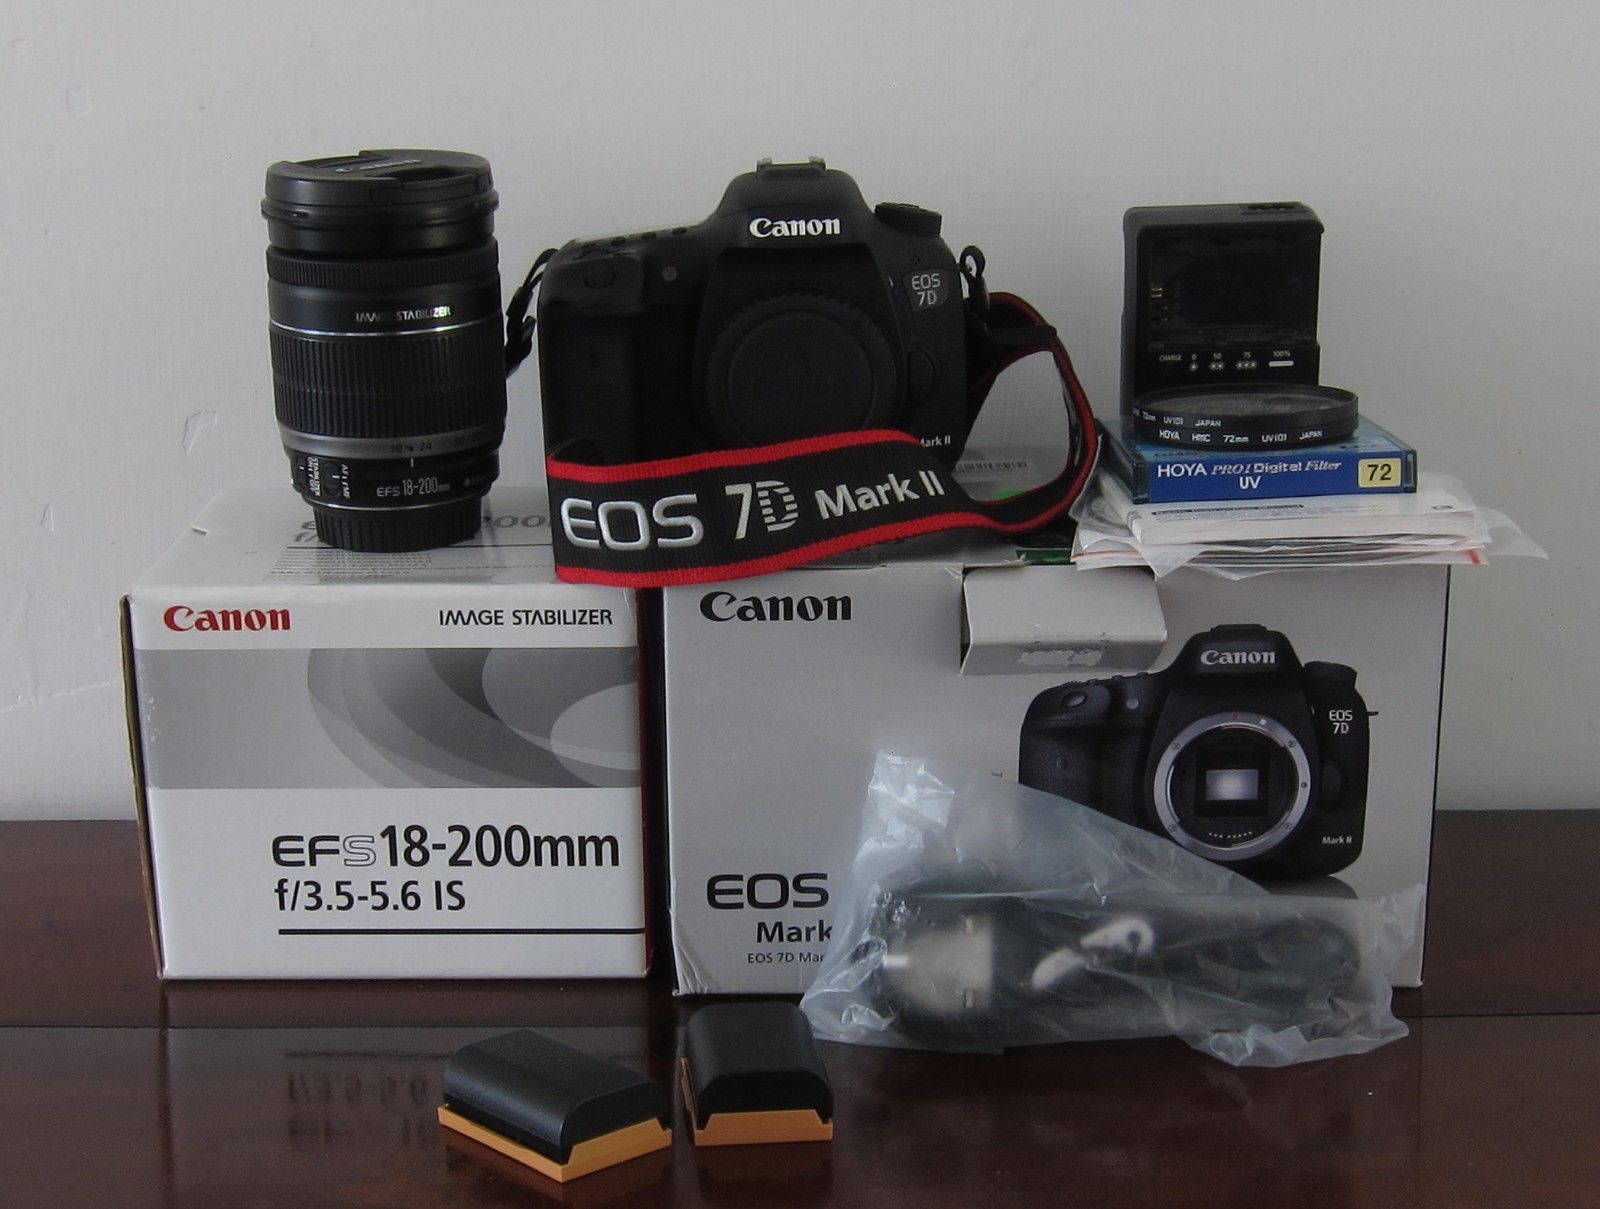 Canon EOS 7D Mark II body with Canon EF-S 18-200mm f/3.5-5.6 IS Lens